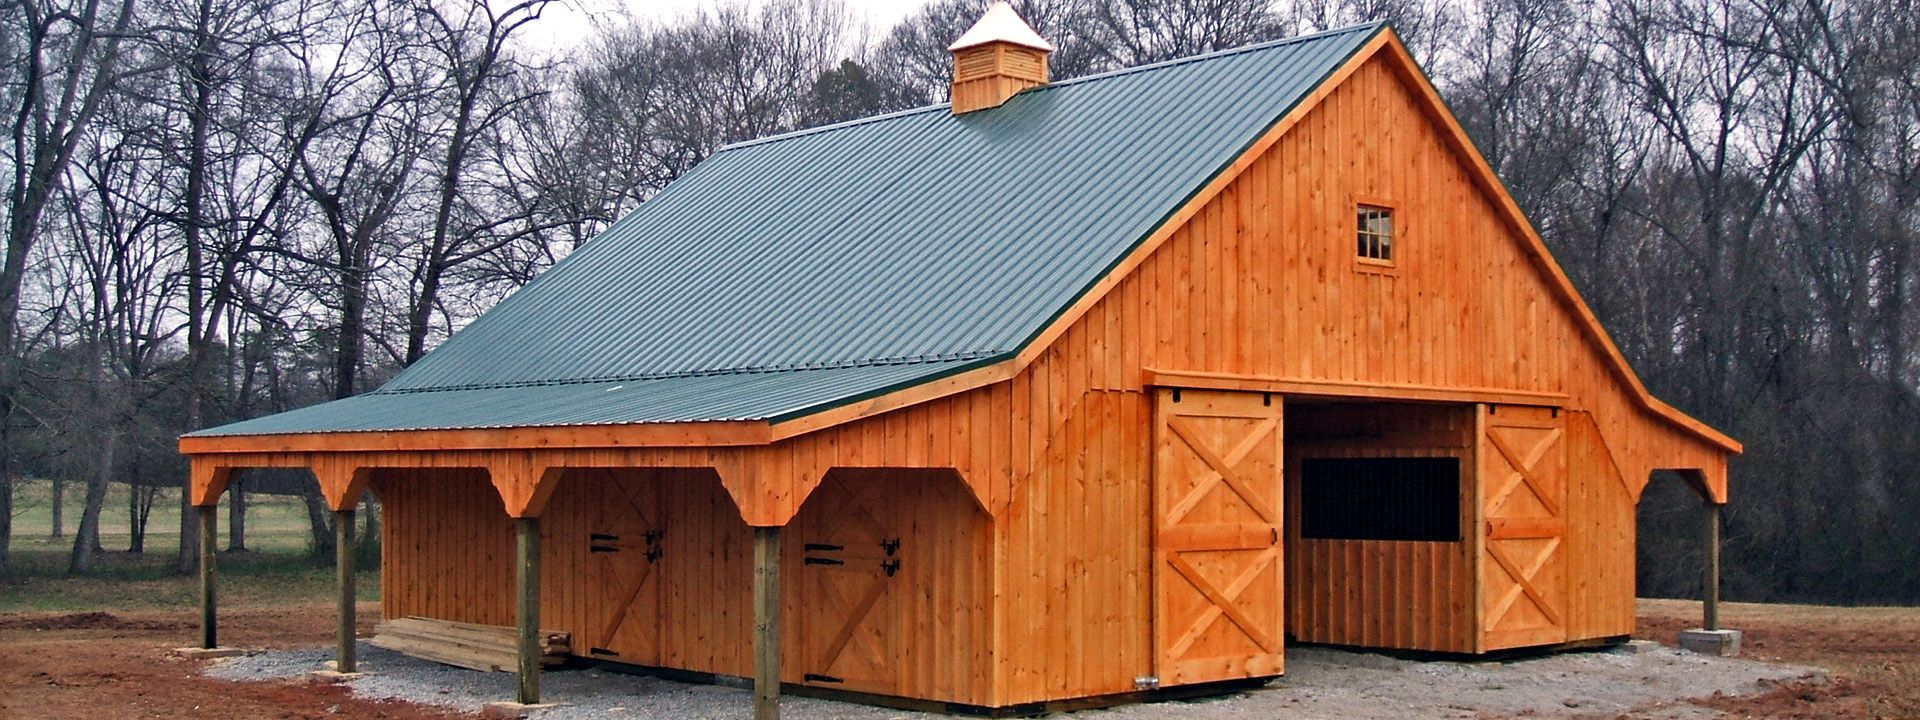 Modular horse barn high profile with overhangs 4 stalls for Barn designs for horses